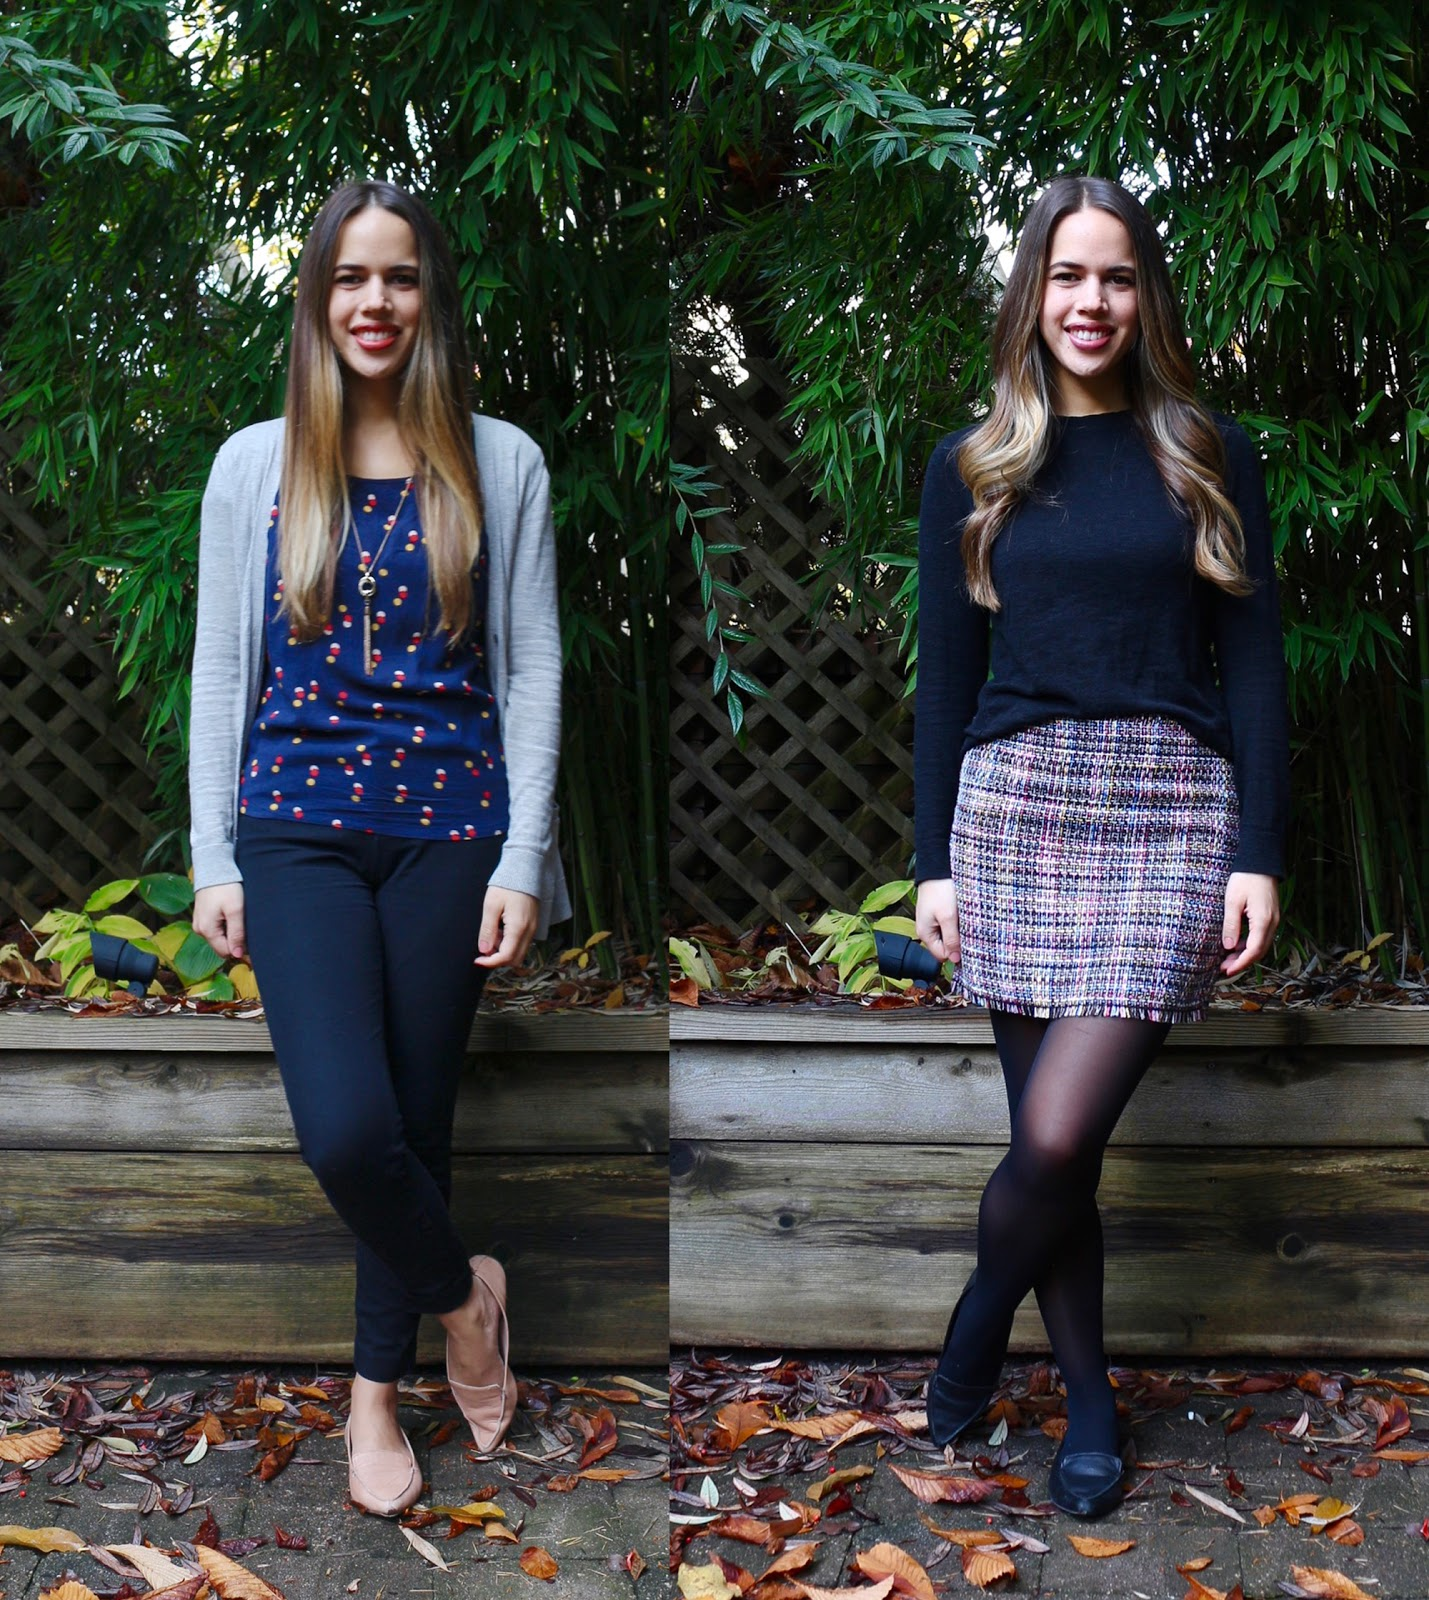 Jules in Flats - November Outfits (Business Casual Fall Workwear on a Budget)